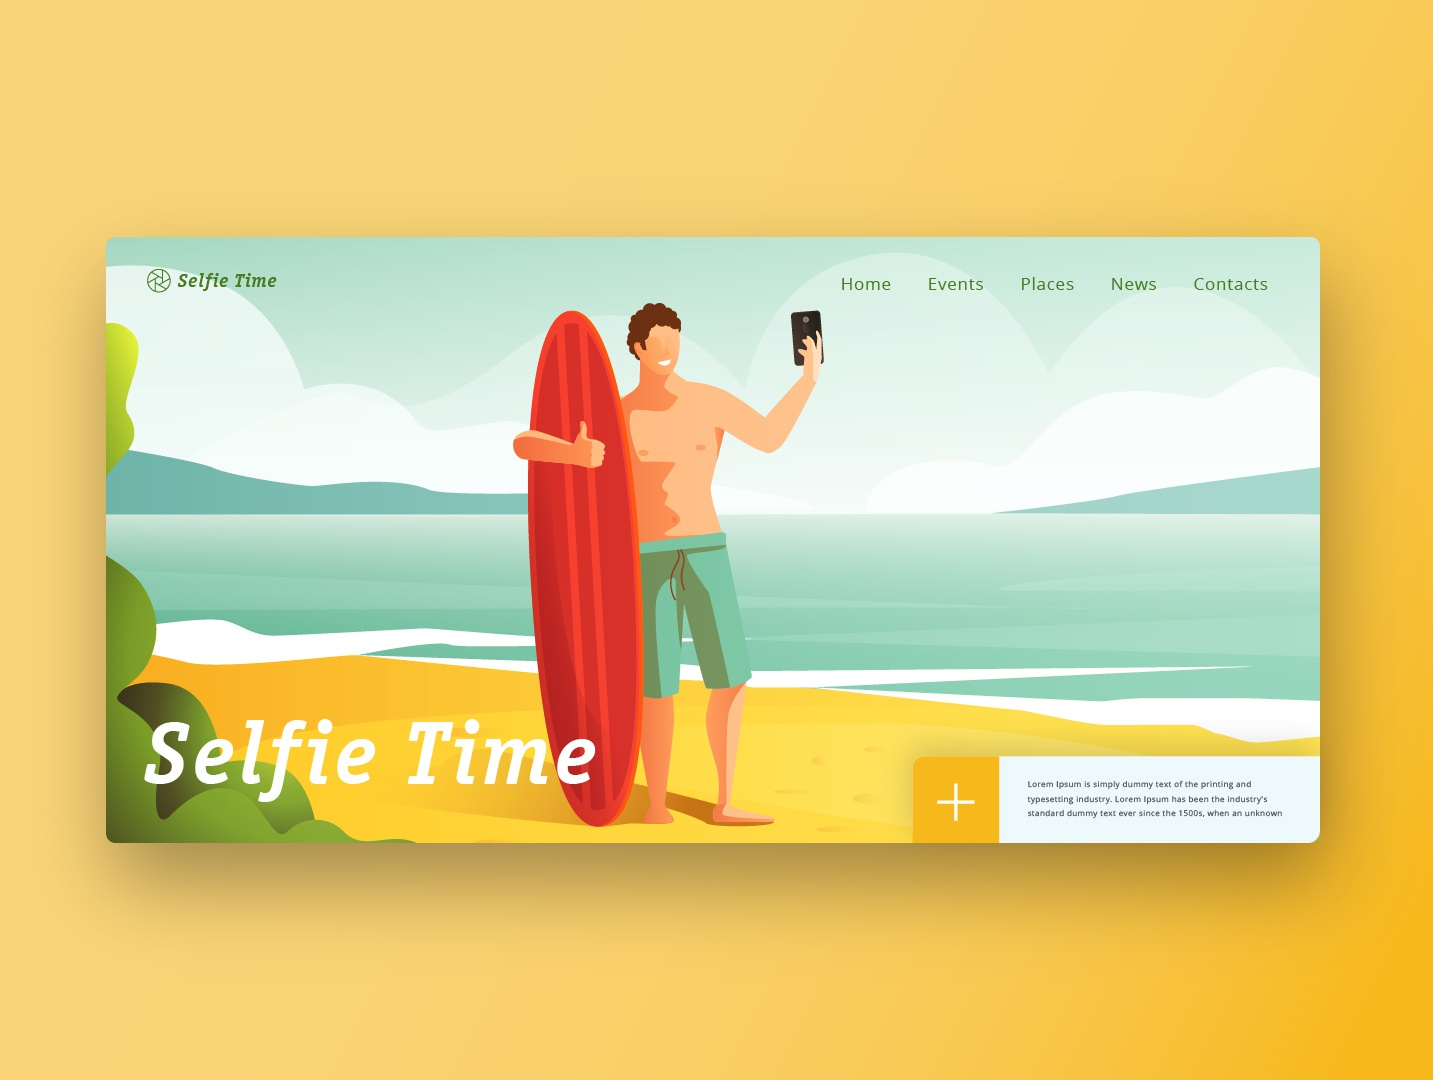 City events - out of town bich branding vector illustration website web ux ui flat design